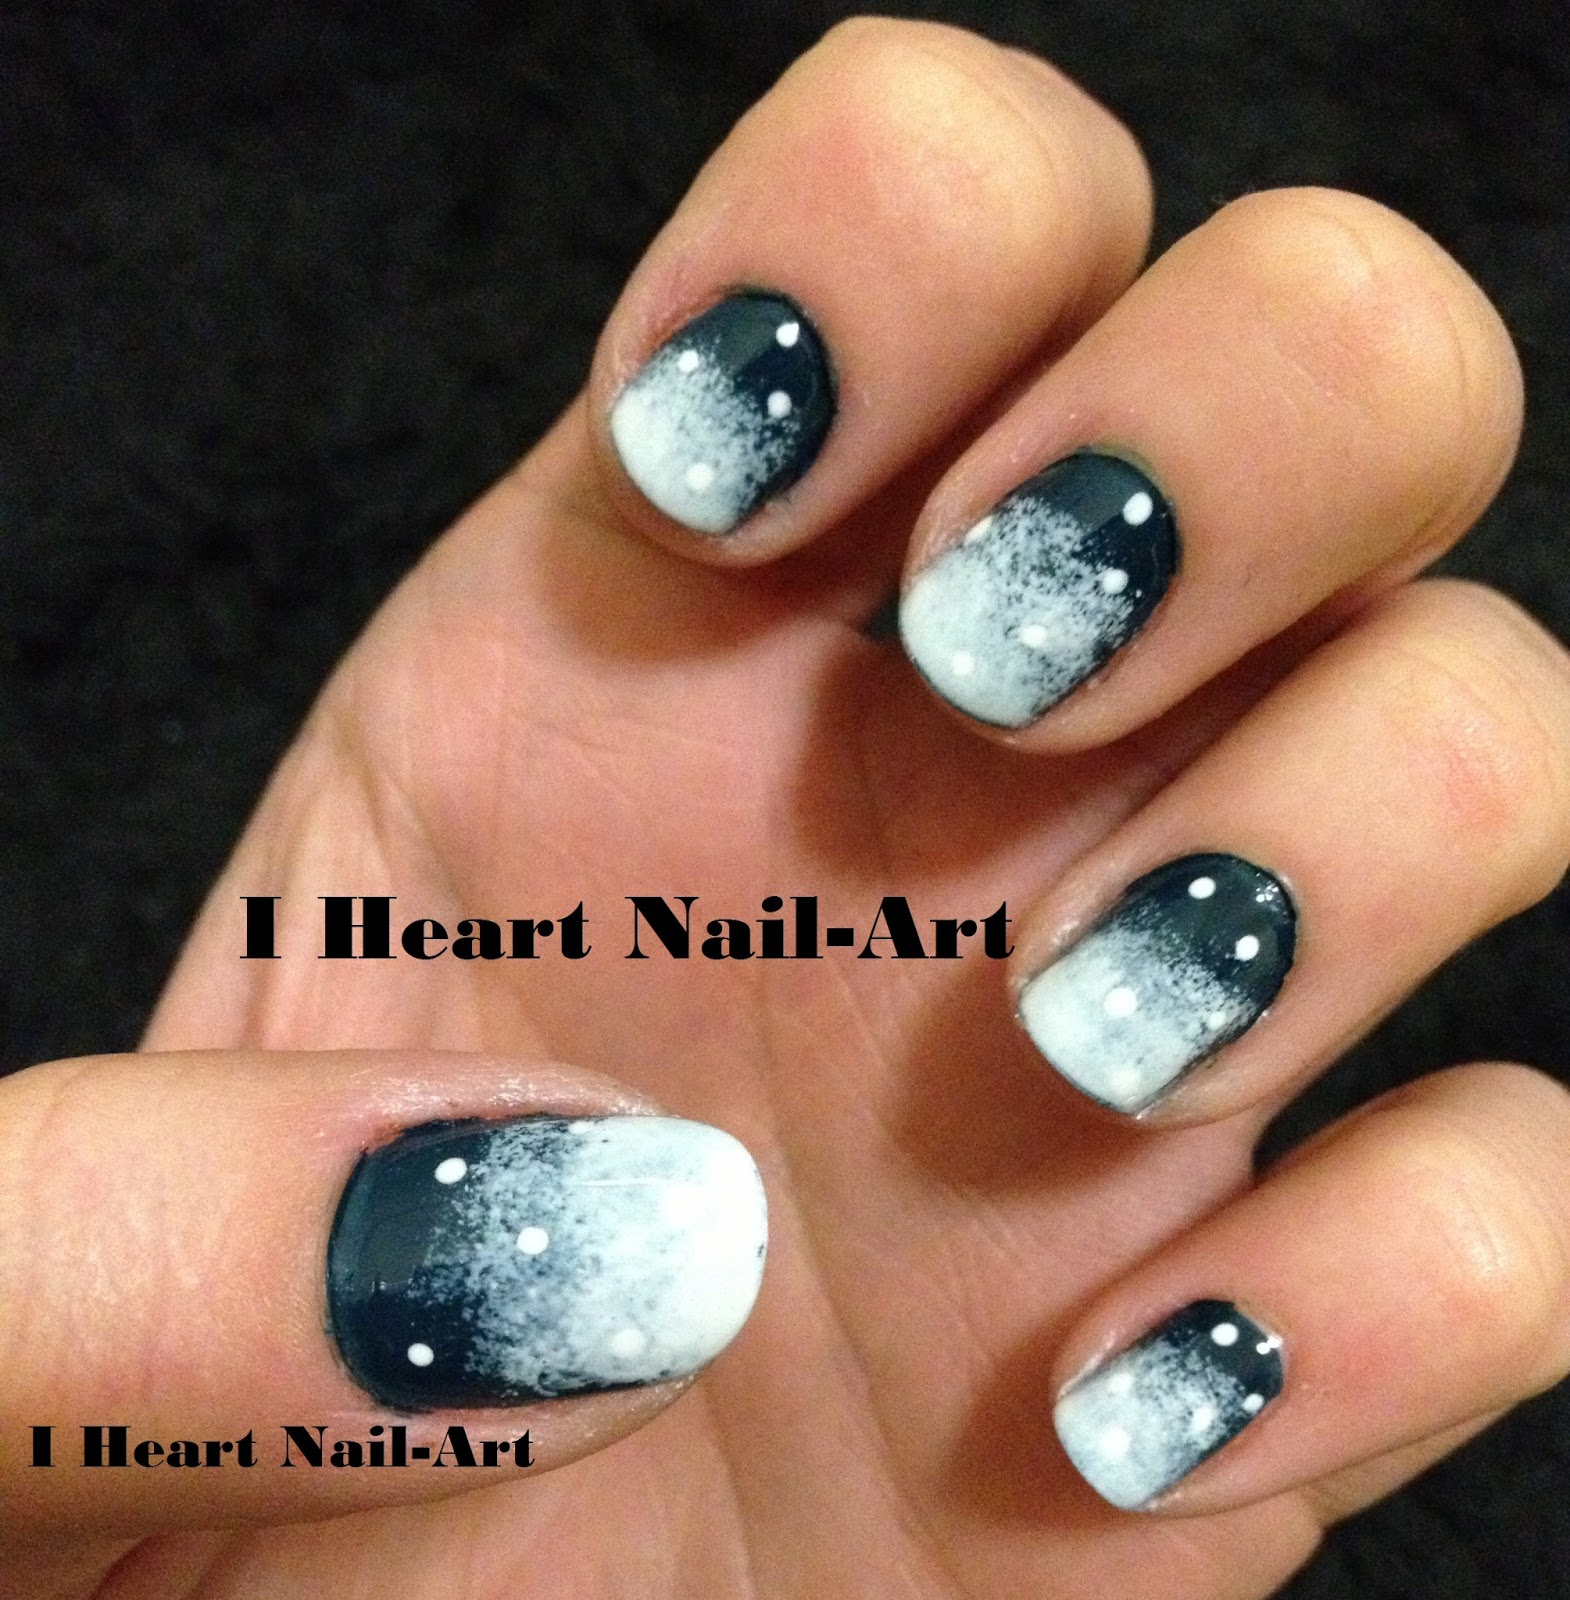 I Heart Nail Art January 2013